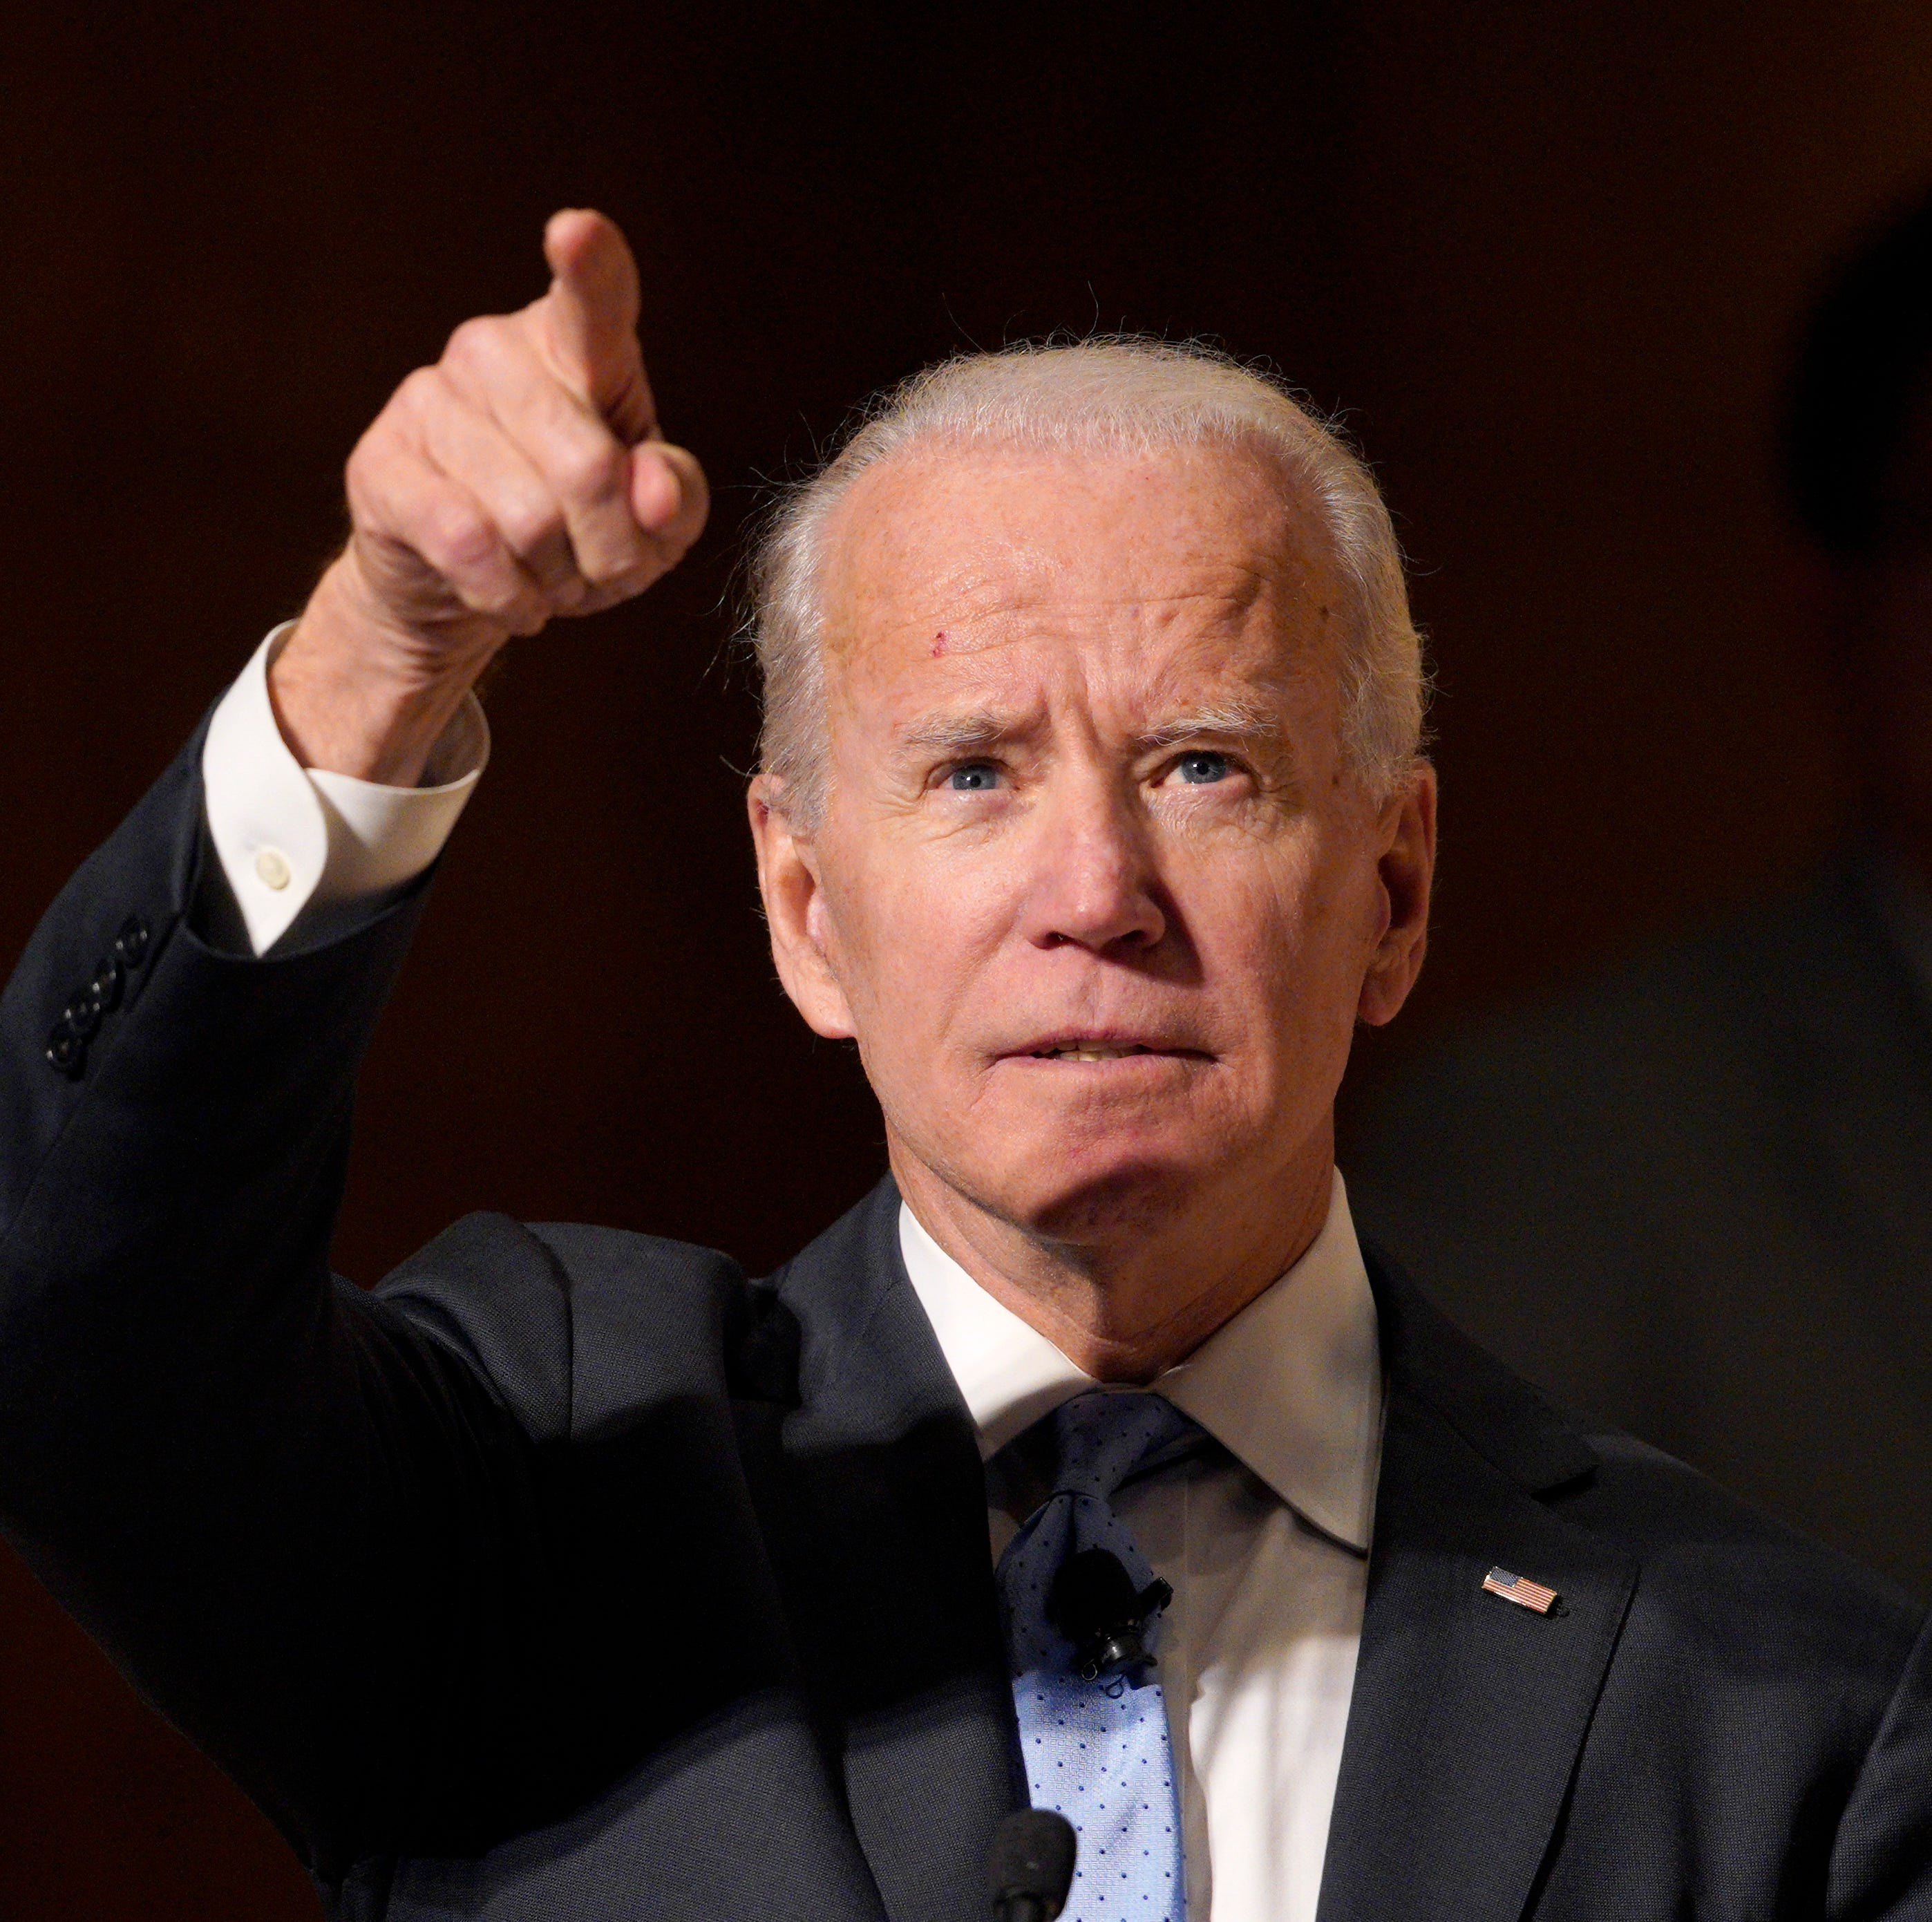 Biden told senior Democrat he is giving 2020 presidential race 'a shot,' according to The Hill